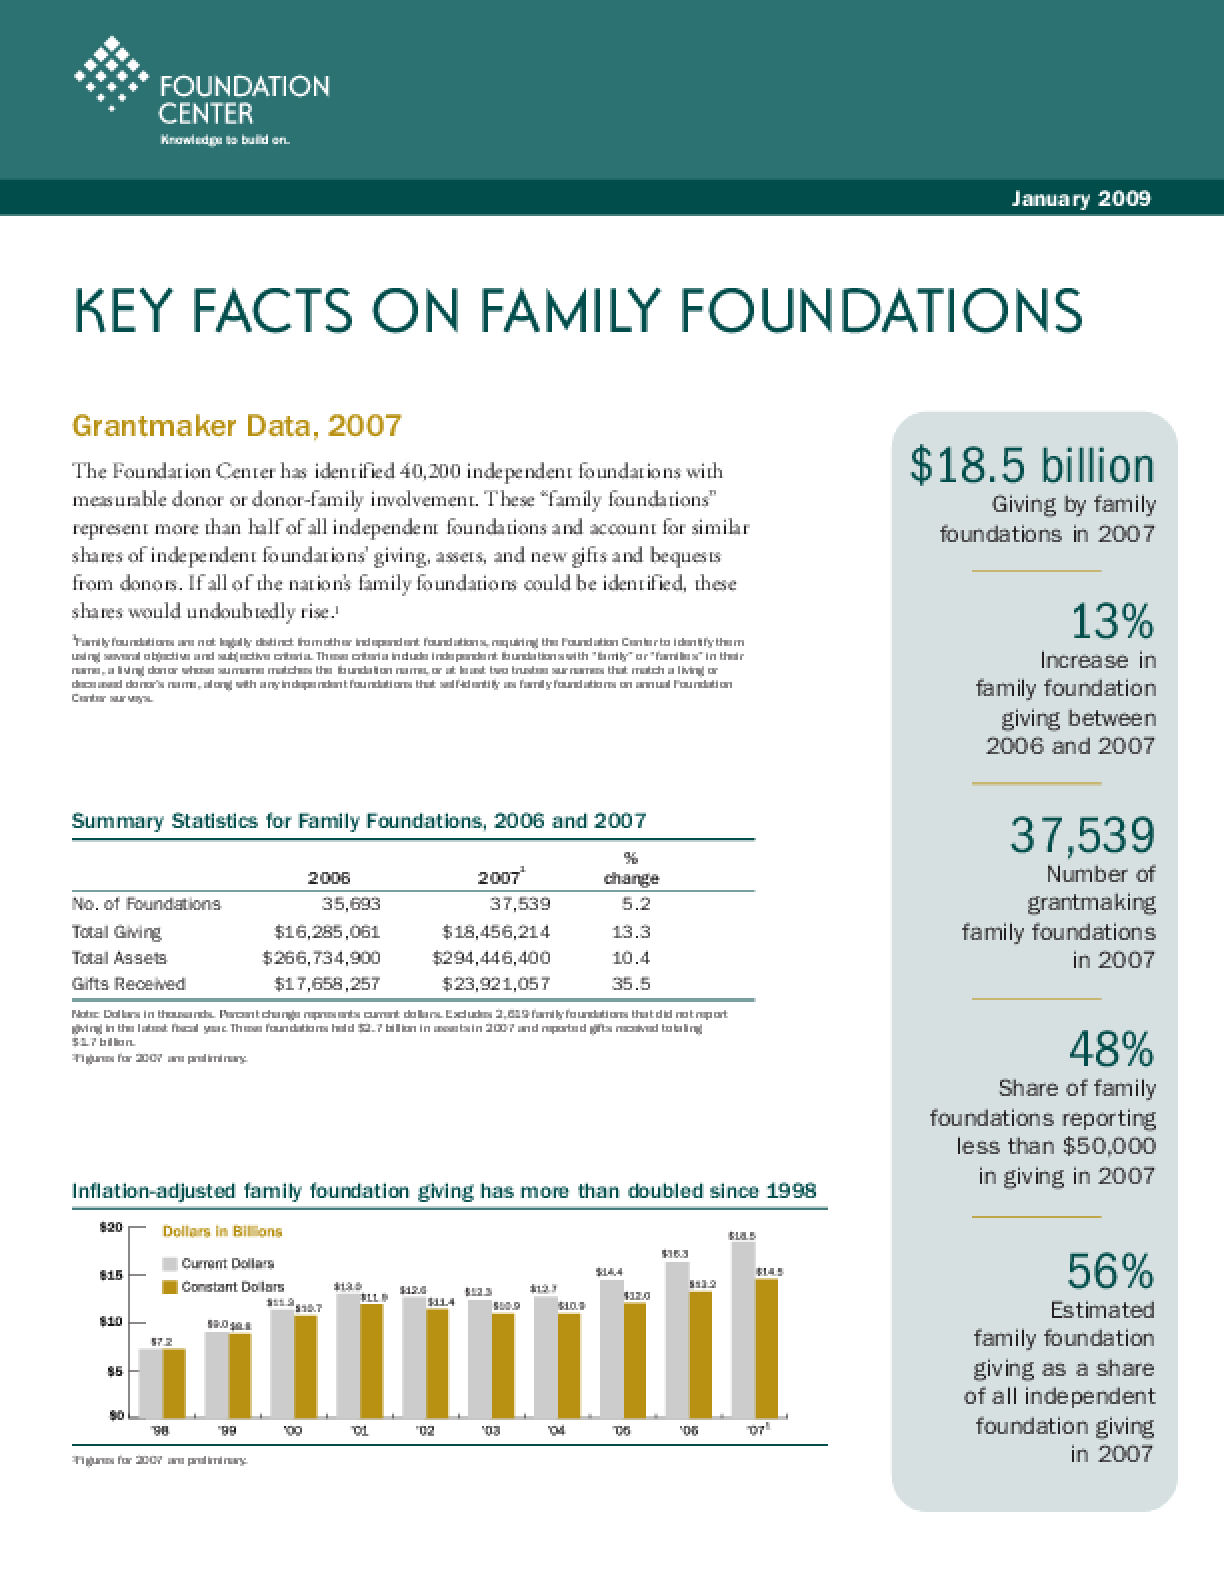 Key Facts on Family Foundations 2009